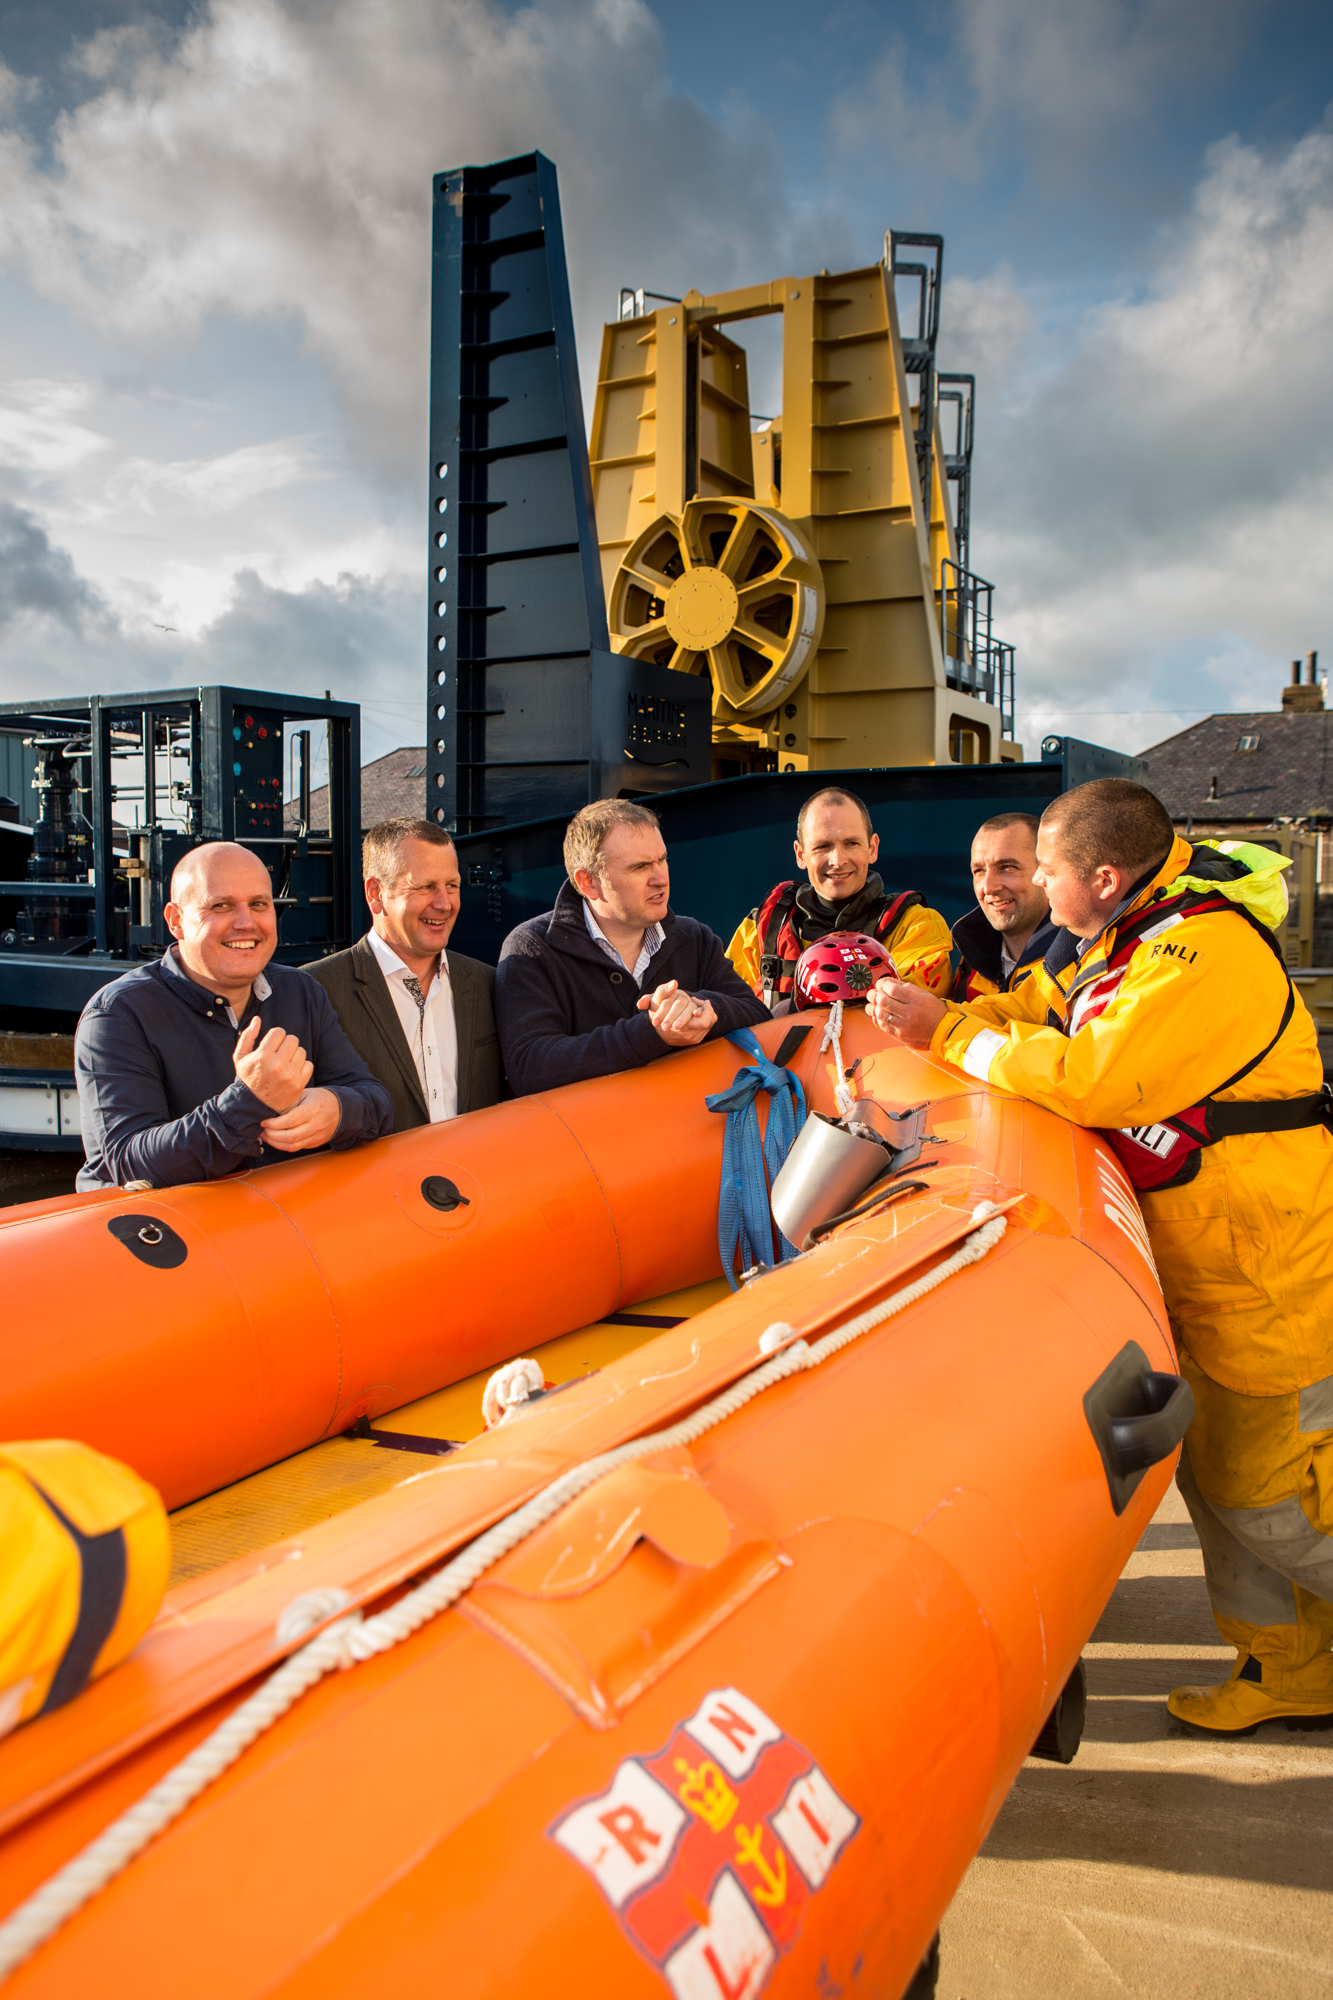 Mike Gaskin, commercial director at Maritime Developments, George Mackintosh, production director at Maritime Developments, and Derek Smith, chief executive of Maritime Developments, with Andrew Simpson, flood response team member and DLA, David Weir, crew member at RNLI Peterhead, and Alastair Wilson, full-time mechanic and crew member at RNLI Peterhead.